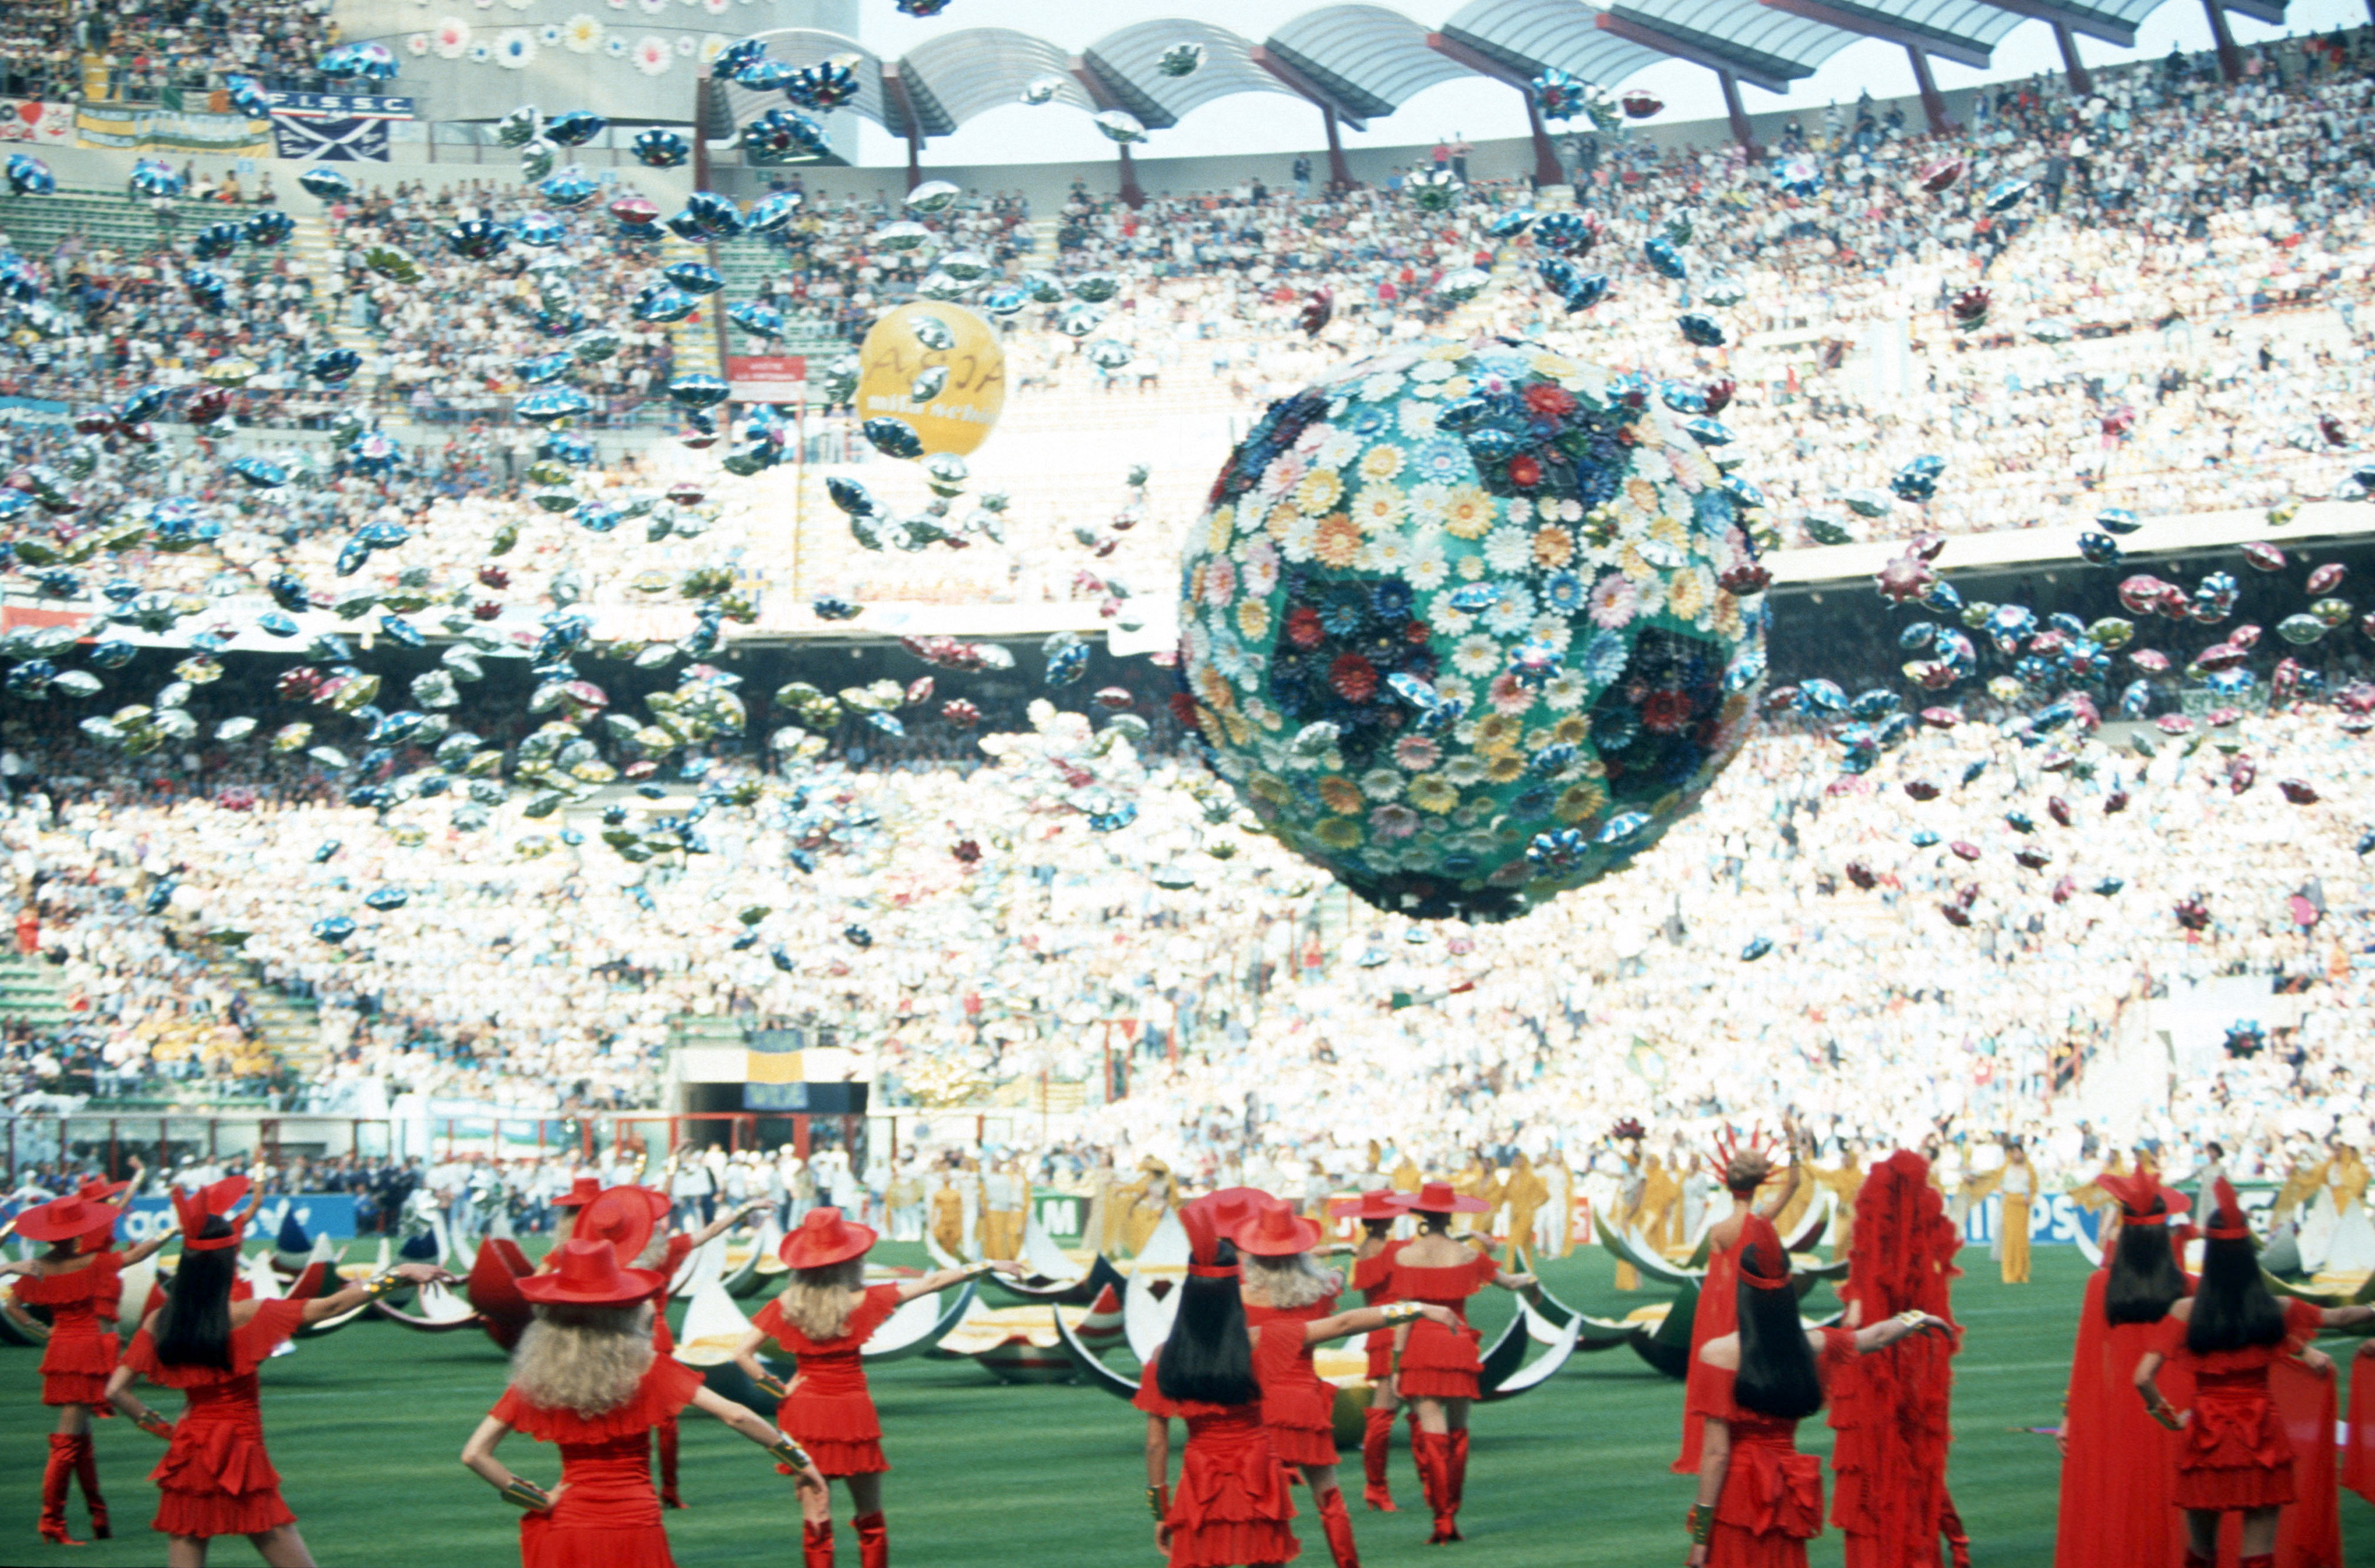 MILAN, ITALY - JUNE 09: Opening Ceremony for the 1990 World Cup at the Guiseppe Meazza Stadium on June 09 in Milan, Italy. (Photo by Bongarts/Getty Images)